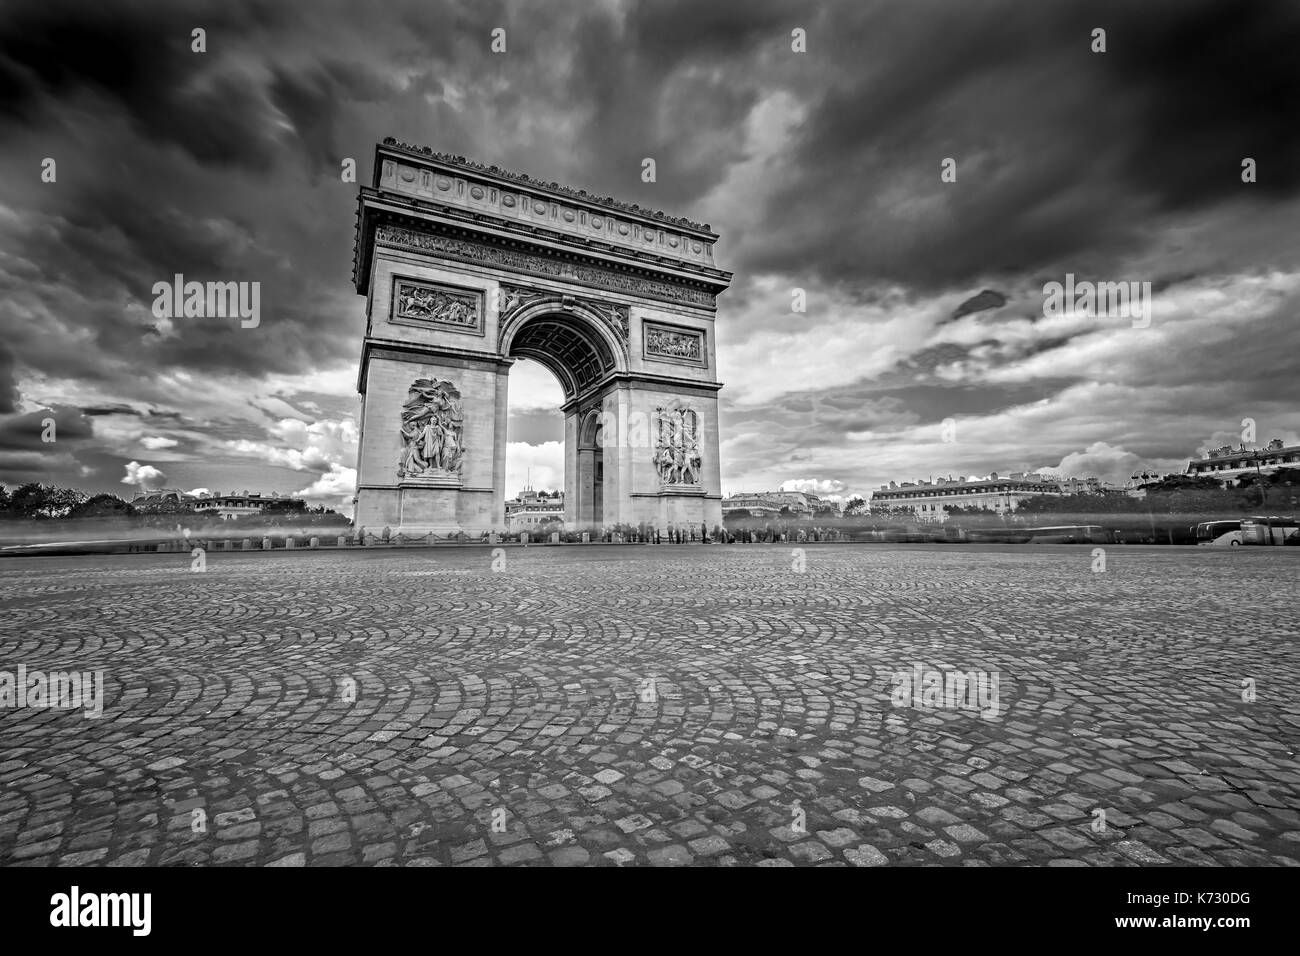 Dark Clouds coming over the Arc de Triomphe in Paris, France - Stock Image